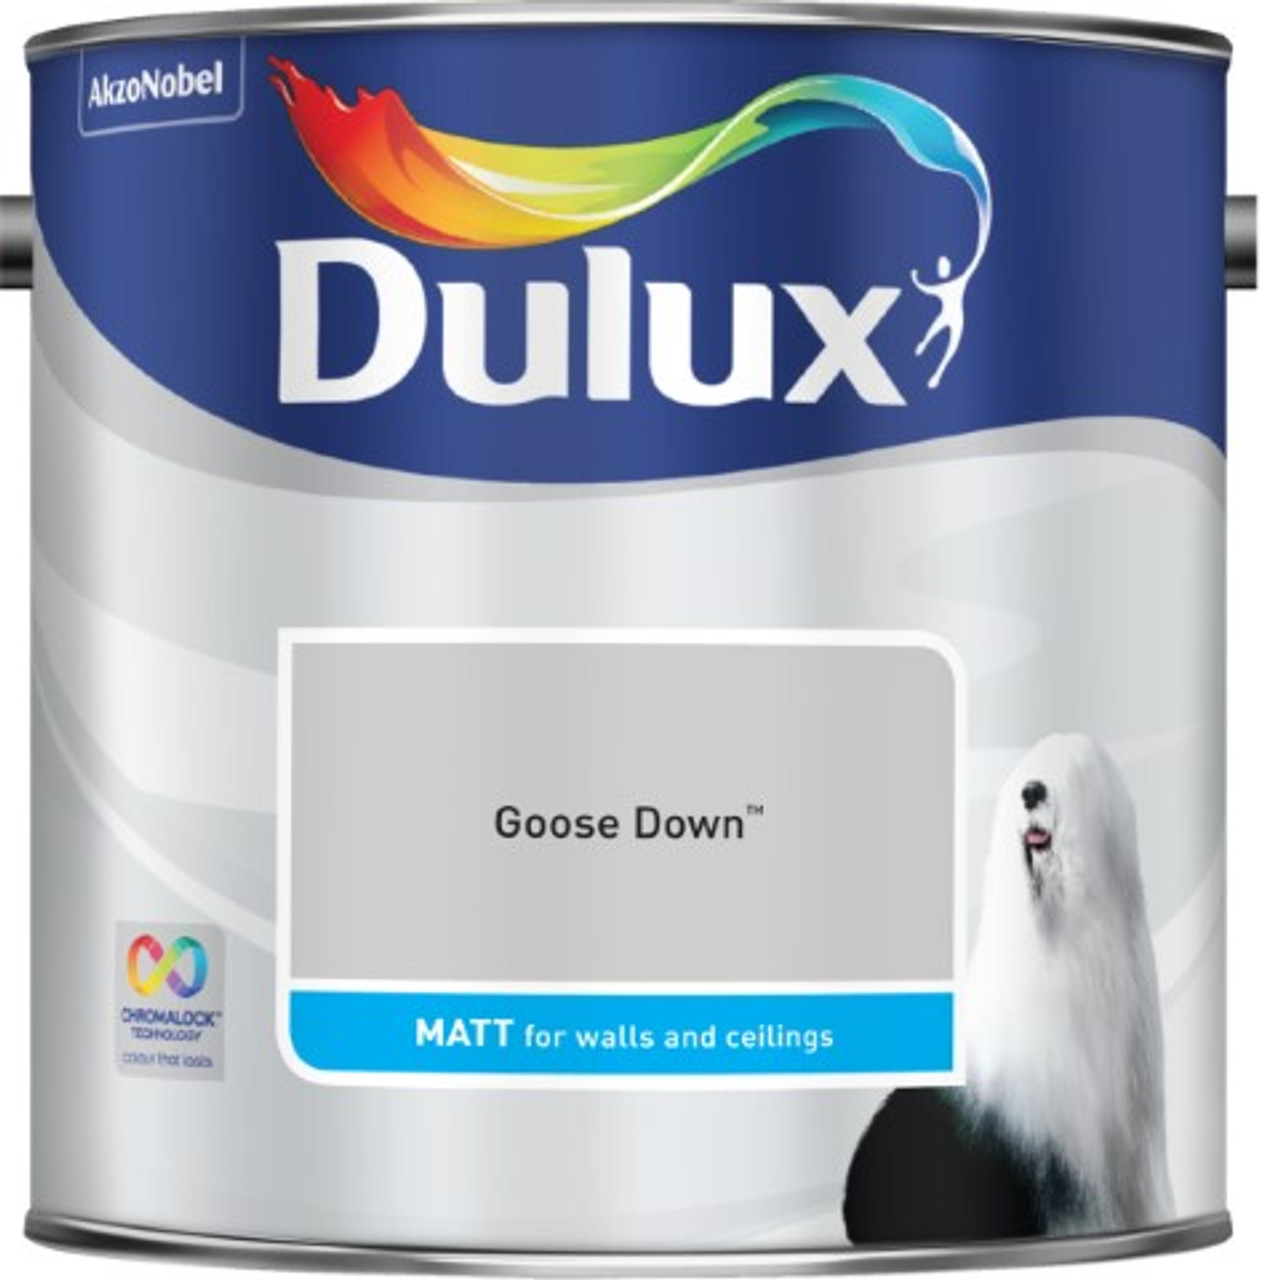 2.5L Dulux Matt Emulsion Goose Down